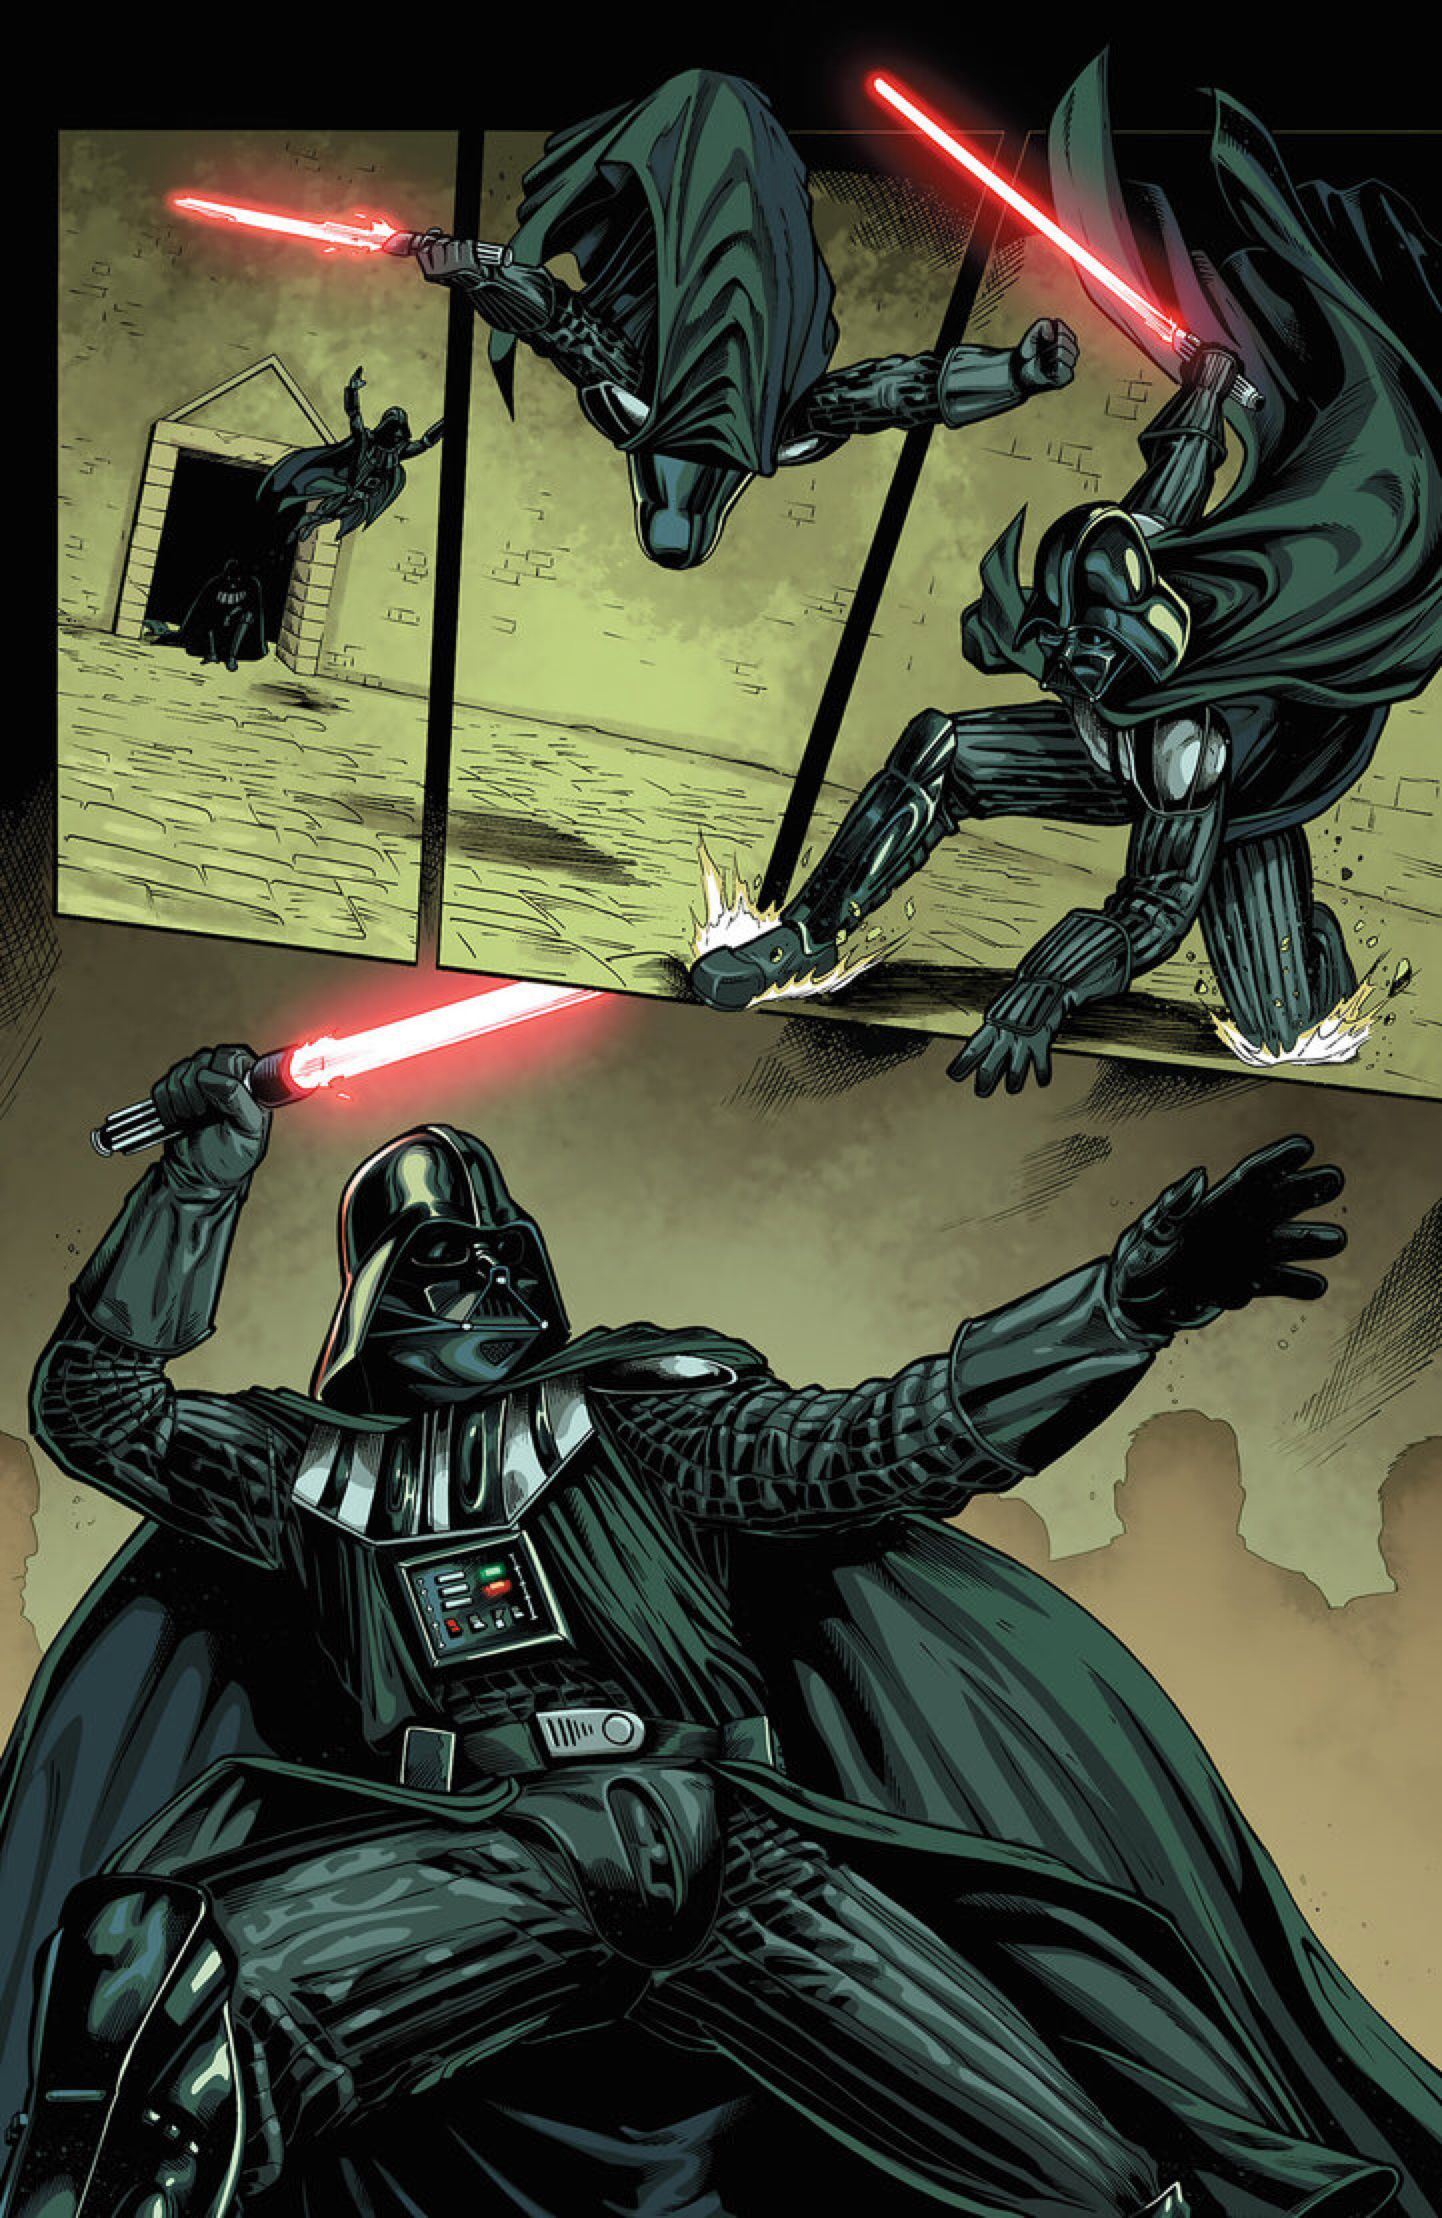 StarWars Darth Vader And The 9th Assassin 3 Pag21 By Dymartgd On DeviantArt